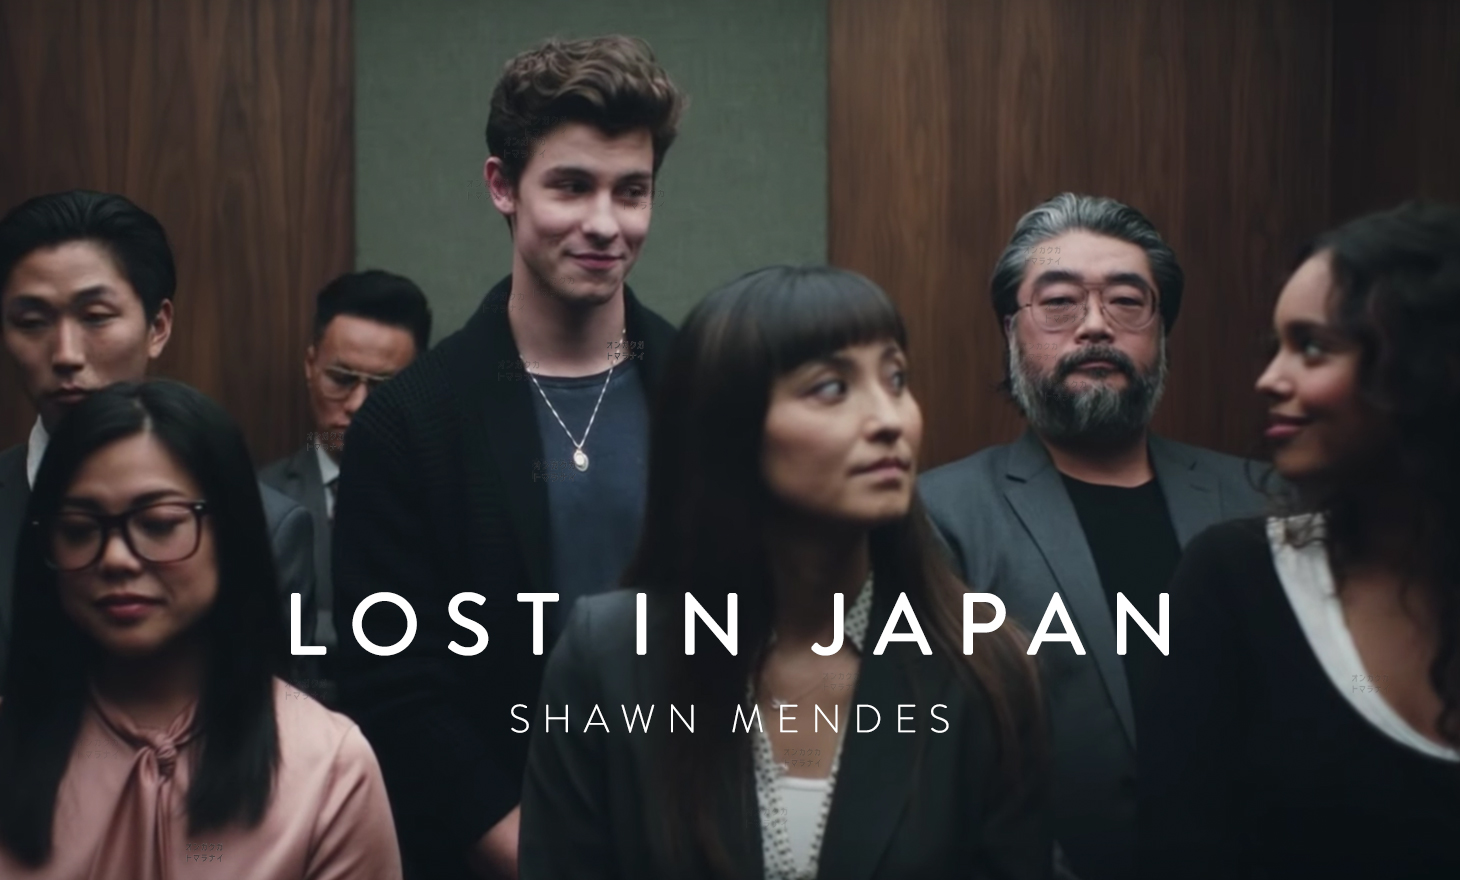 Shawn Mendes : Lost in Japan